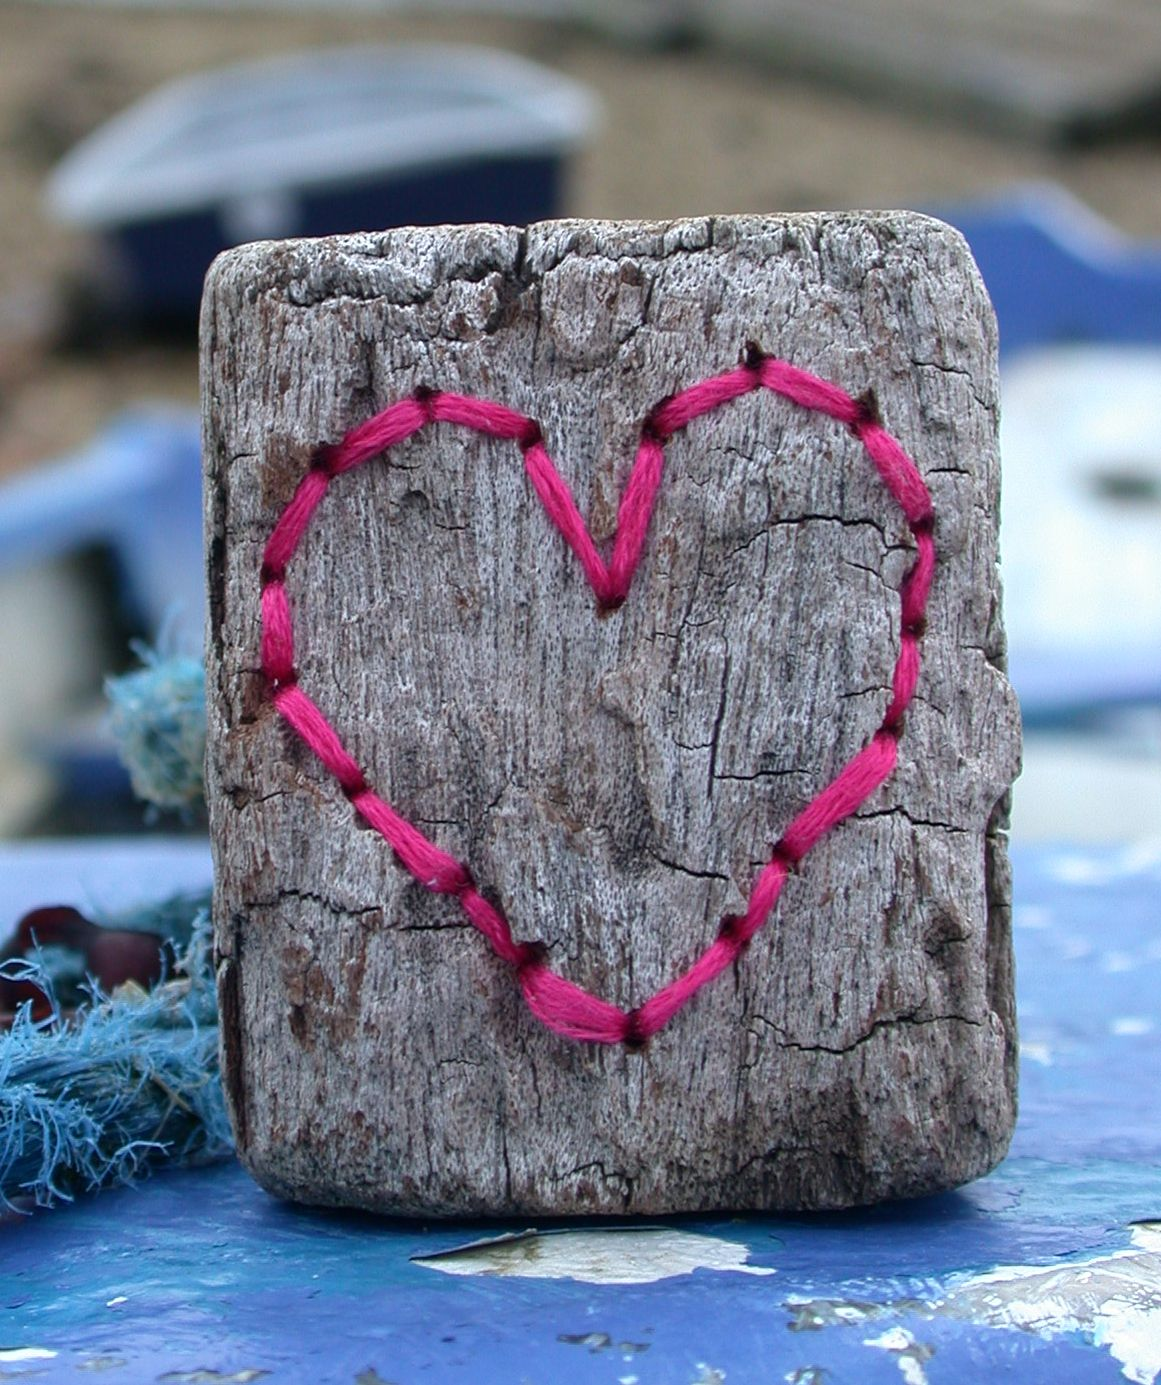 Ella Robinson Ella Robinson Is A Recent Graduate Whose Practice Seizes The Potential Of Found Objects Namely Driftwood Giving Them A Ne Heart Art Decorative Objects Driftwood Art